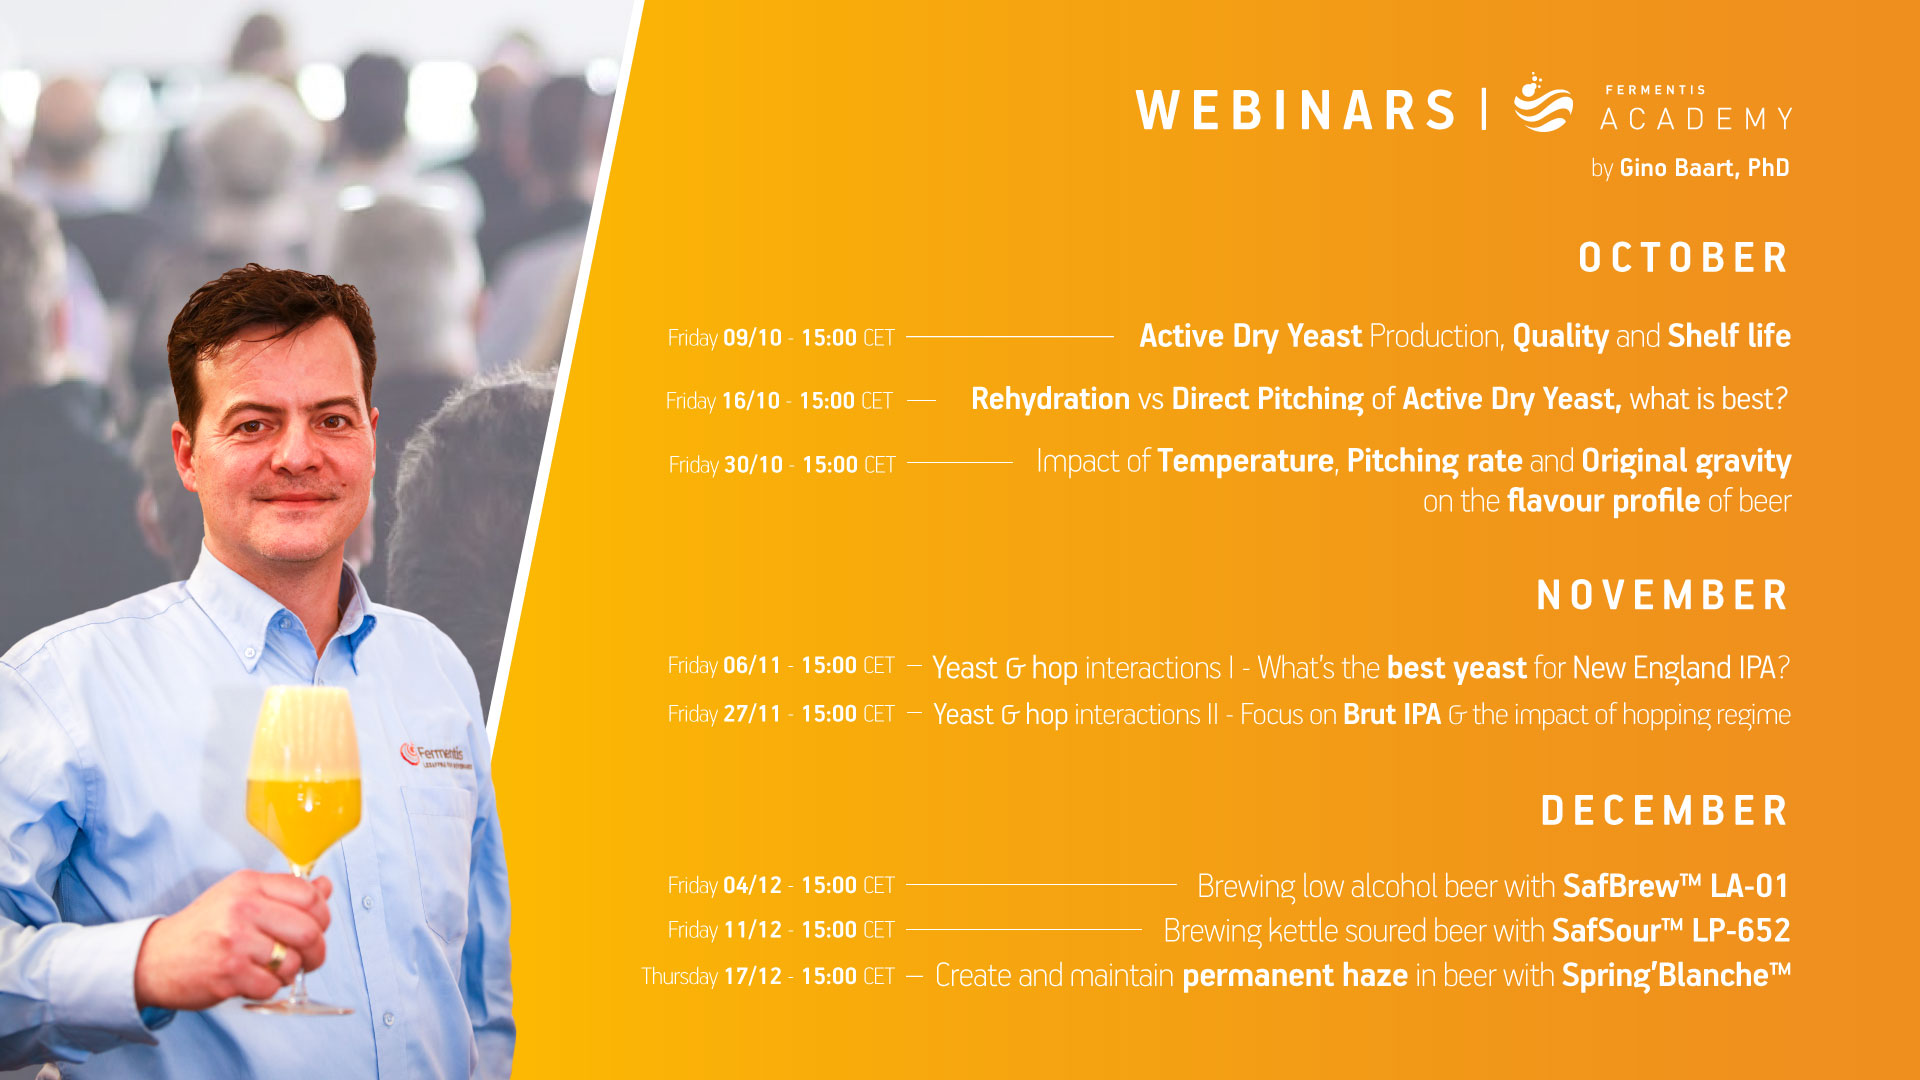 graphic showing the dates for the winter webinars and a photo of Gino Baart, the host